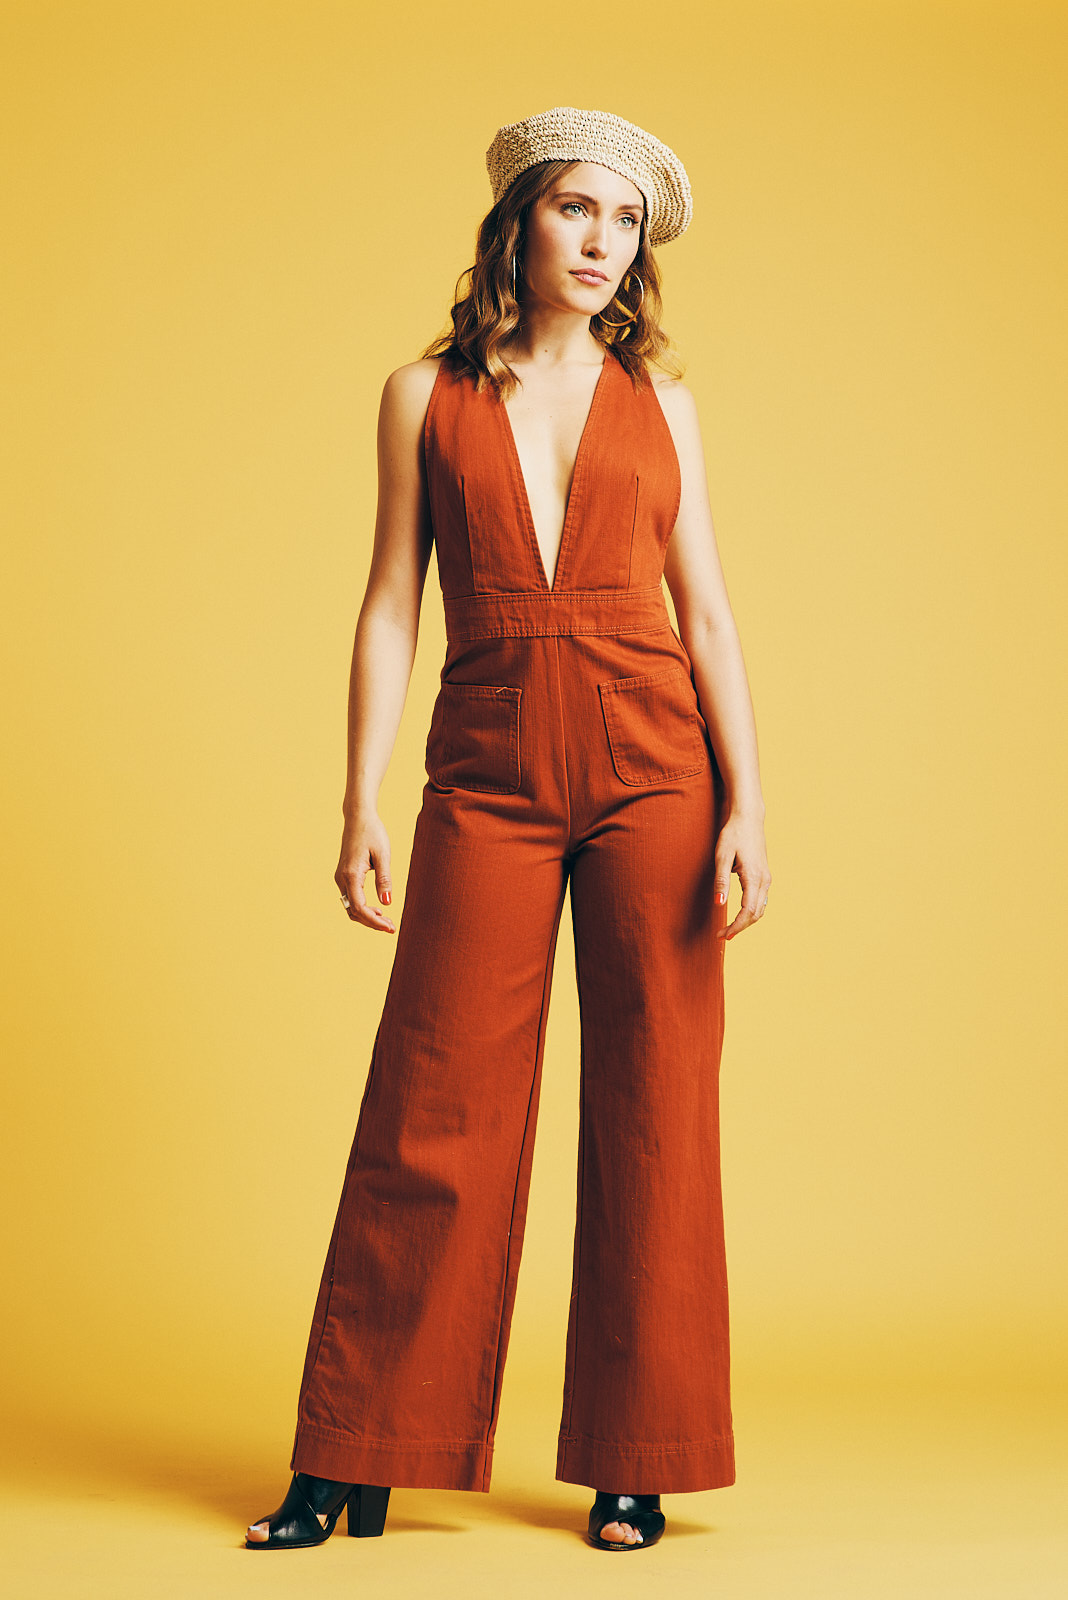 Jumpsuit and Hat: Urban Outfitters Photographer: Noah   Asanias